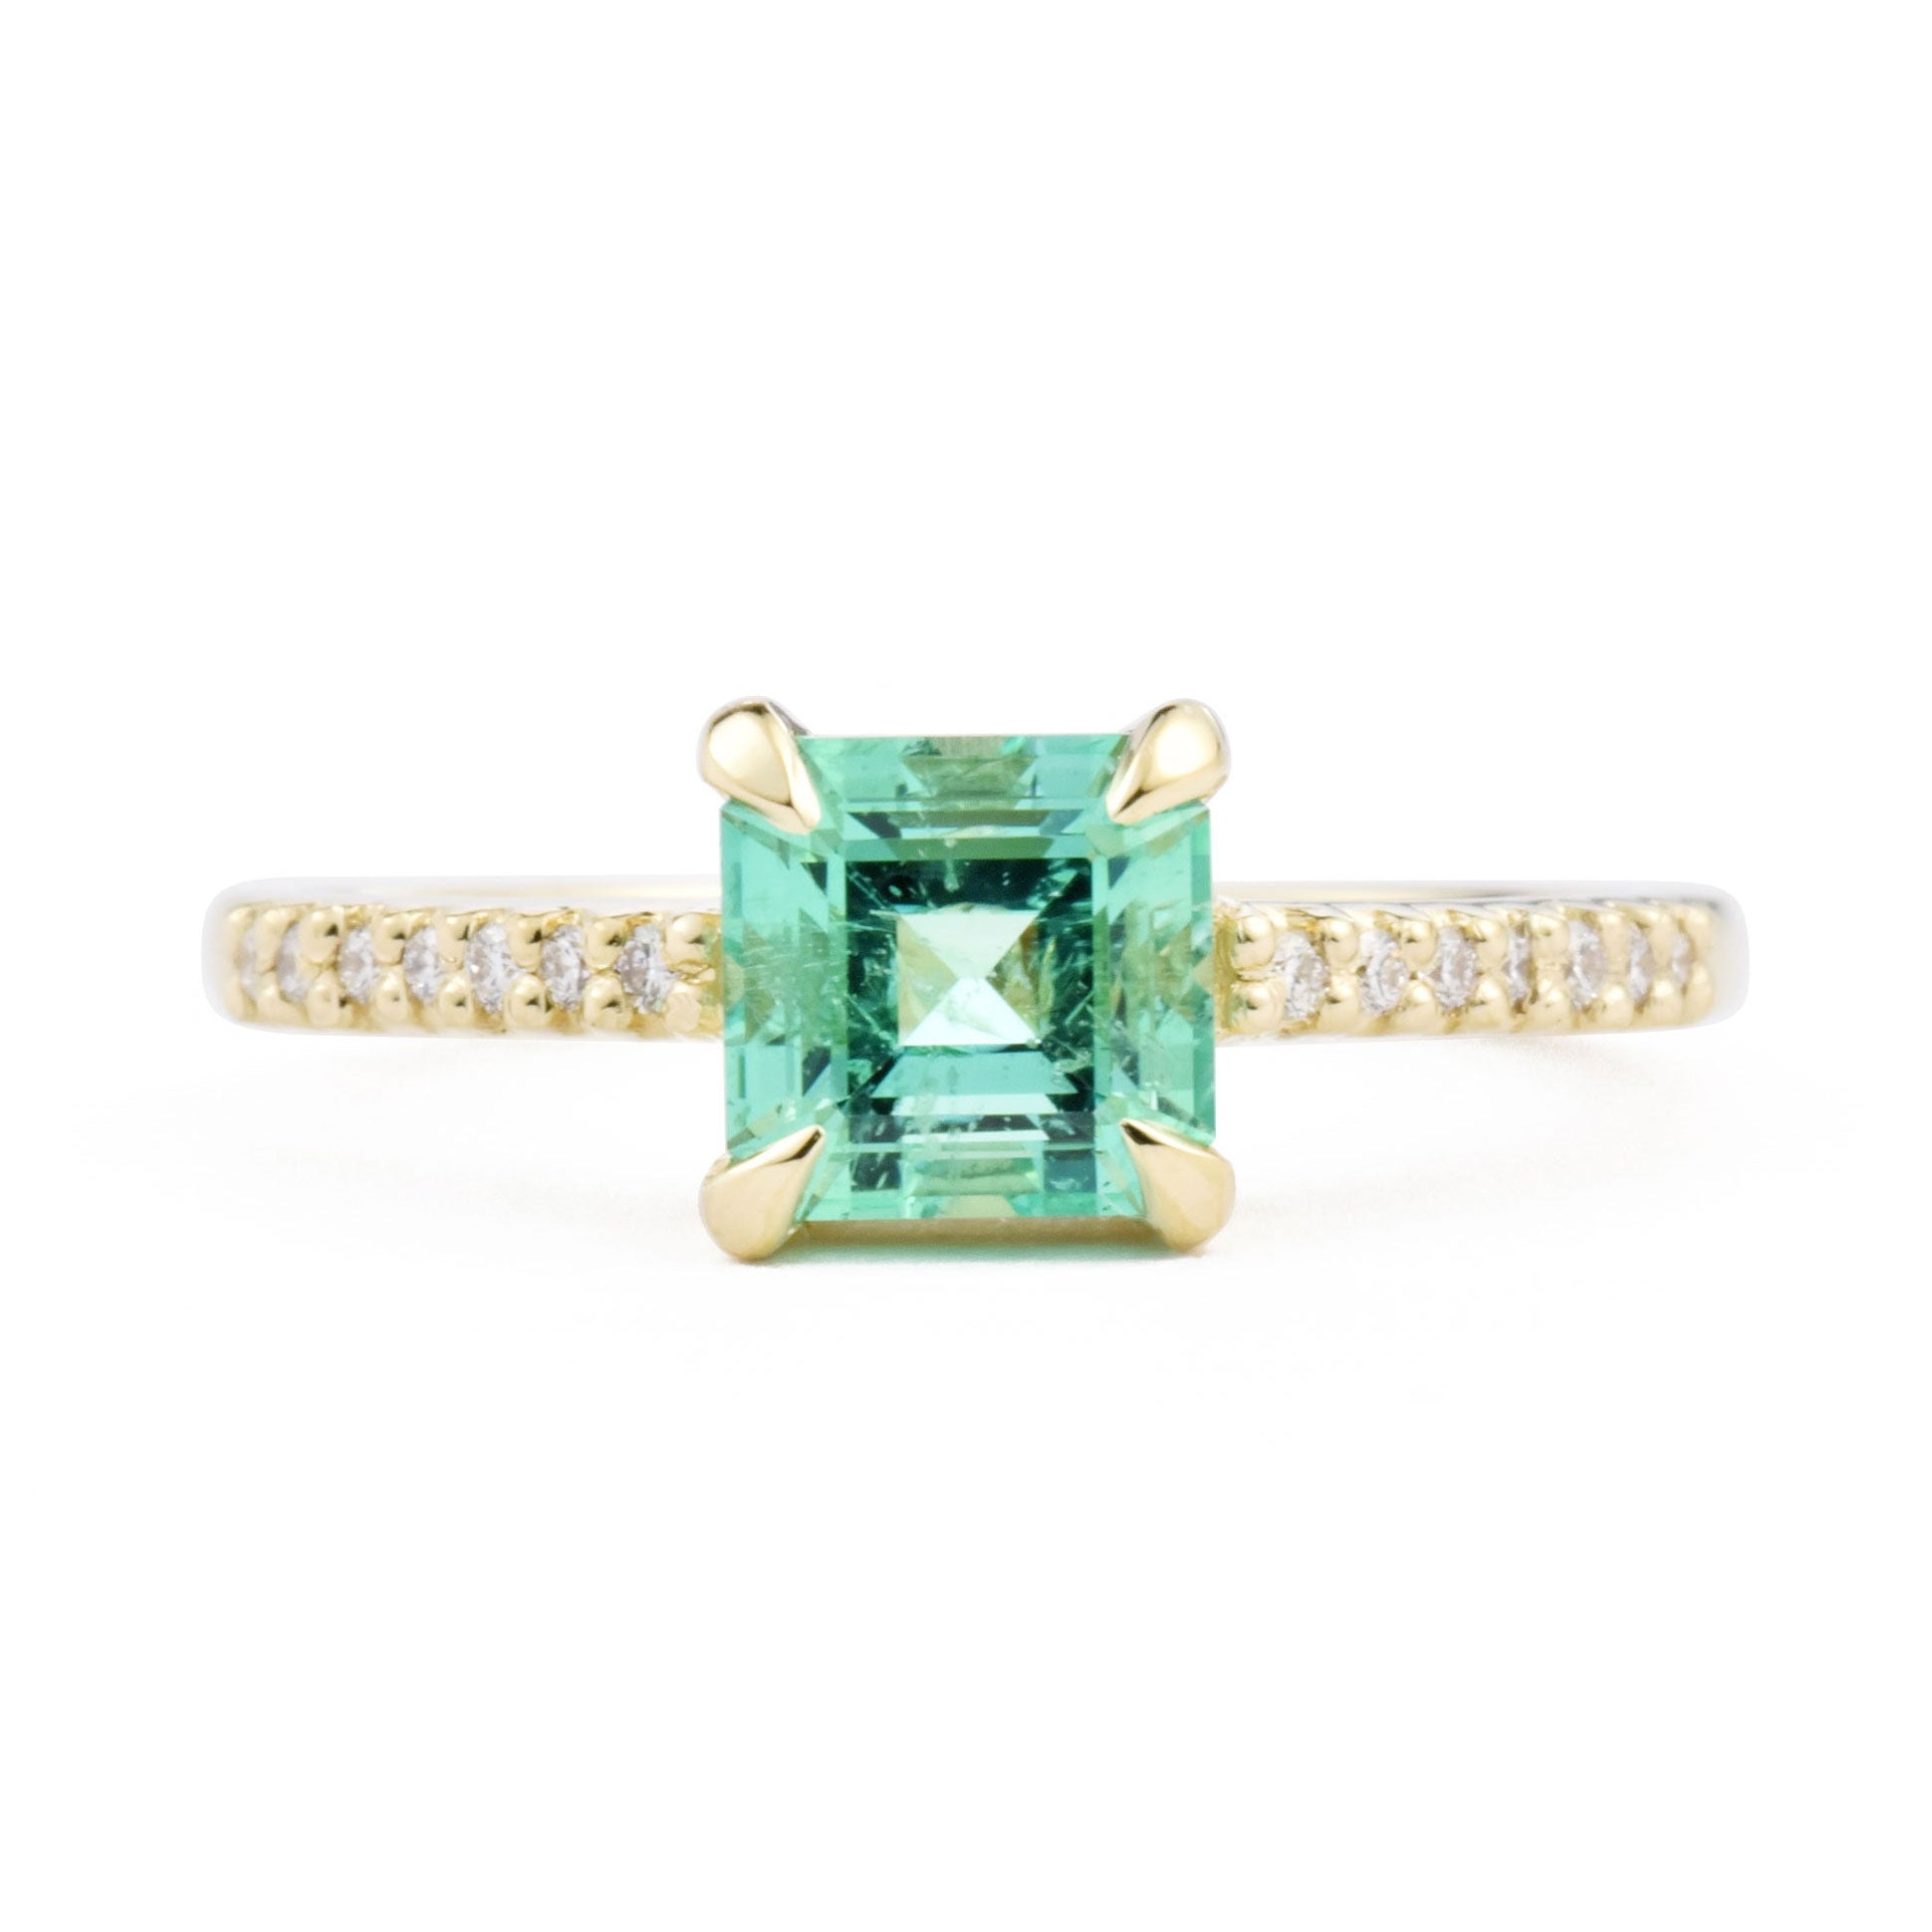 1.1ct Eva Emerald & Pavé Diamond Engagement Ring shown from the front